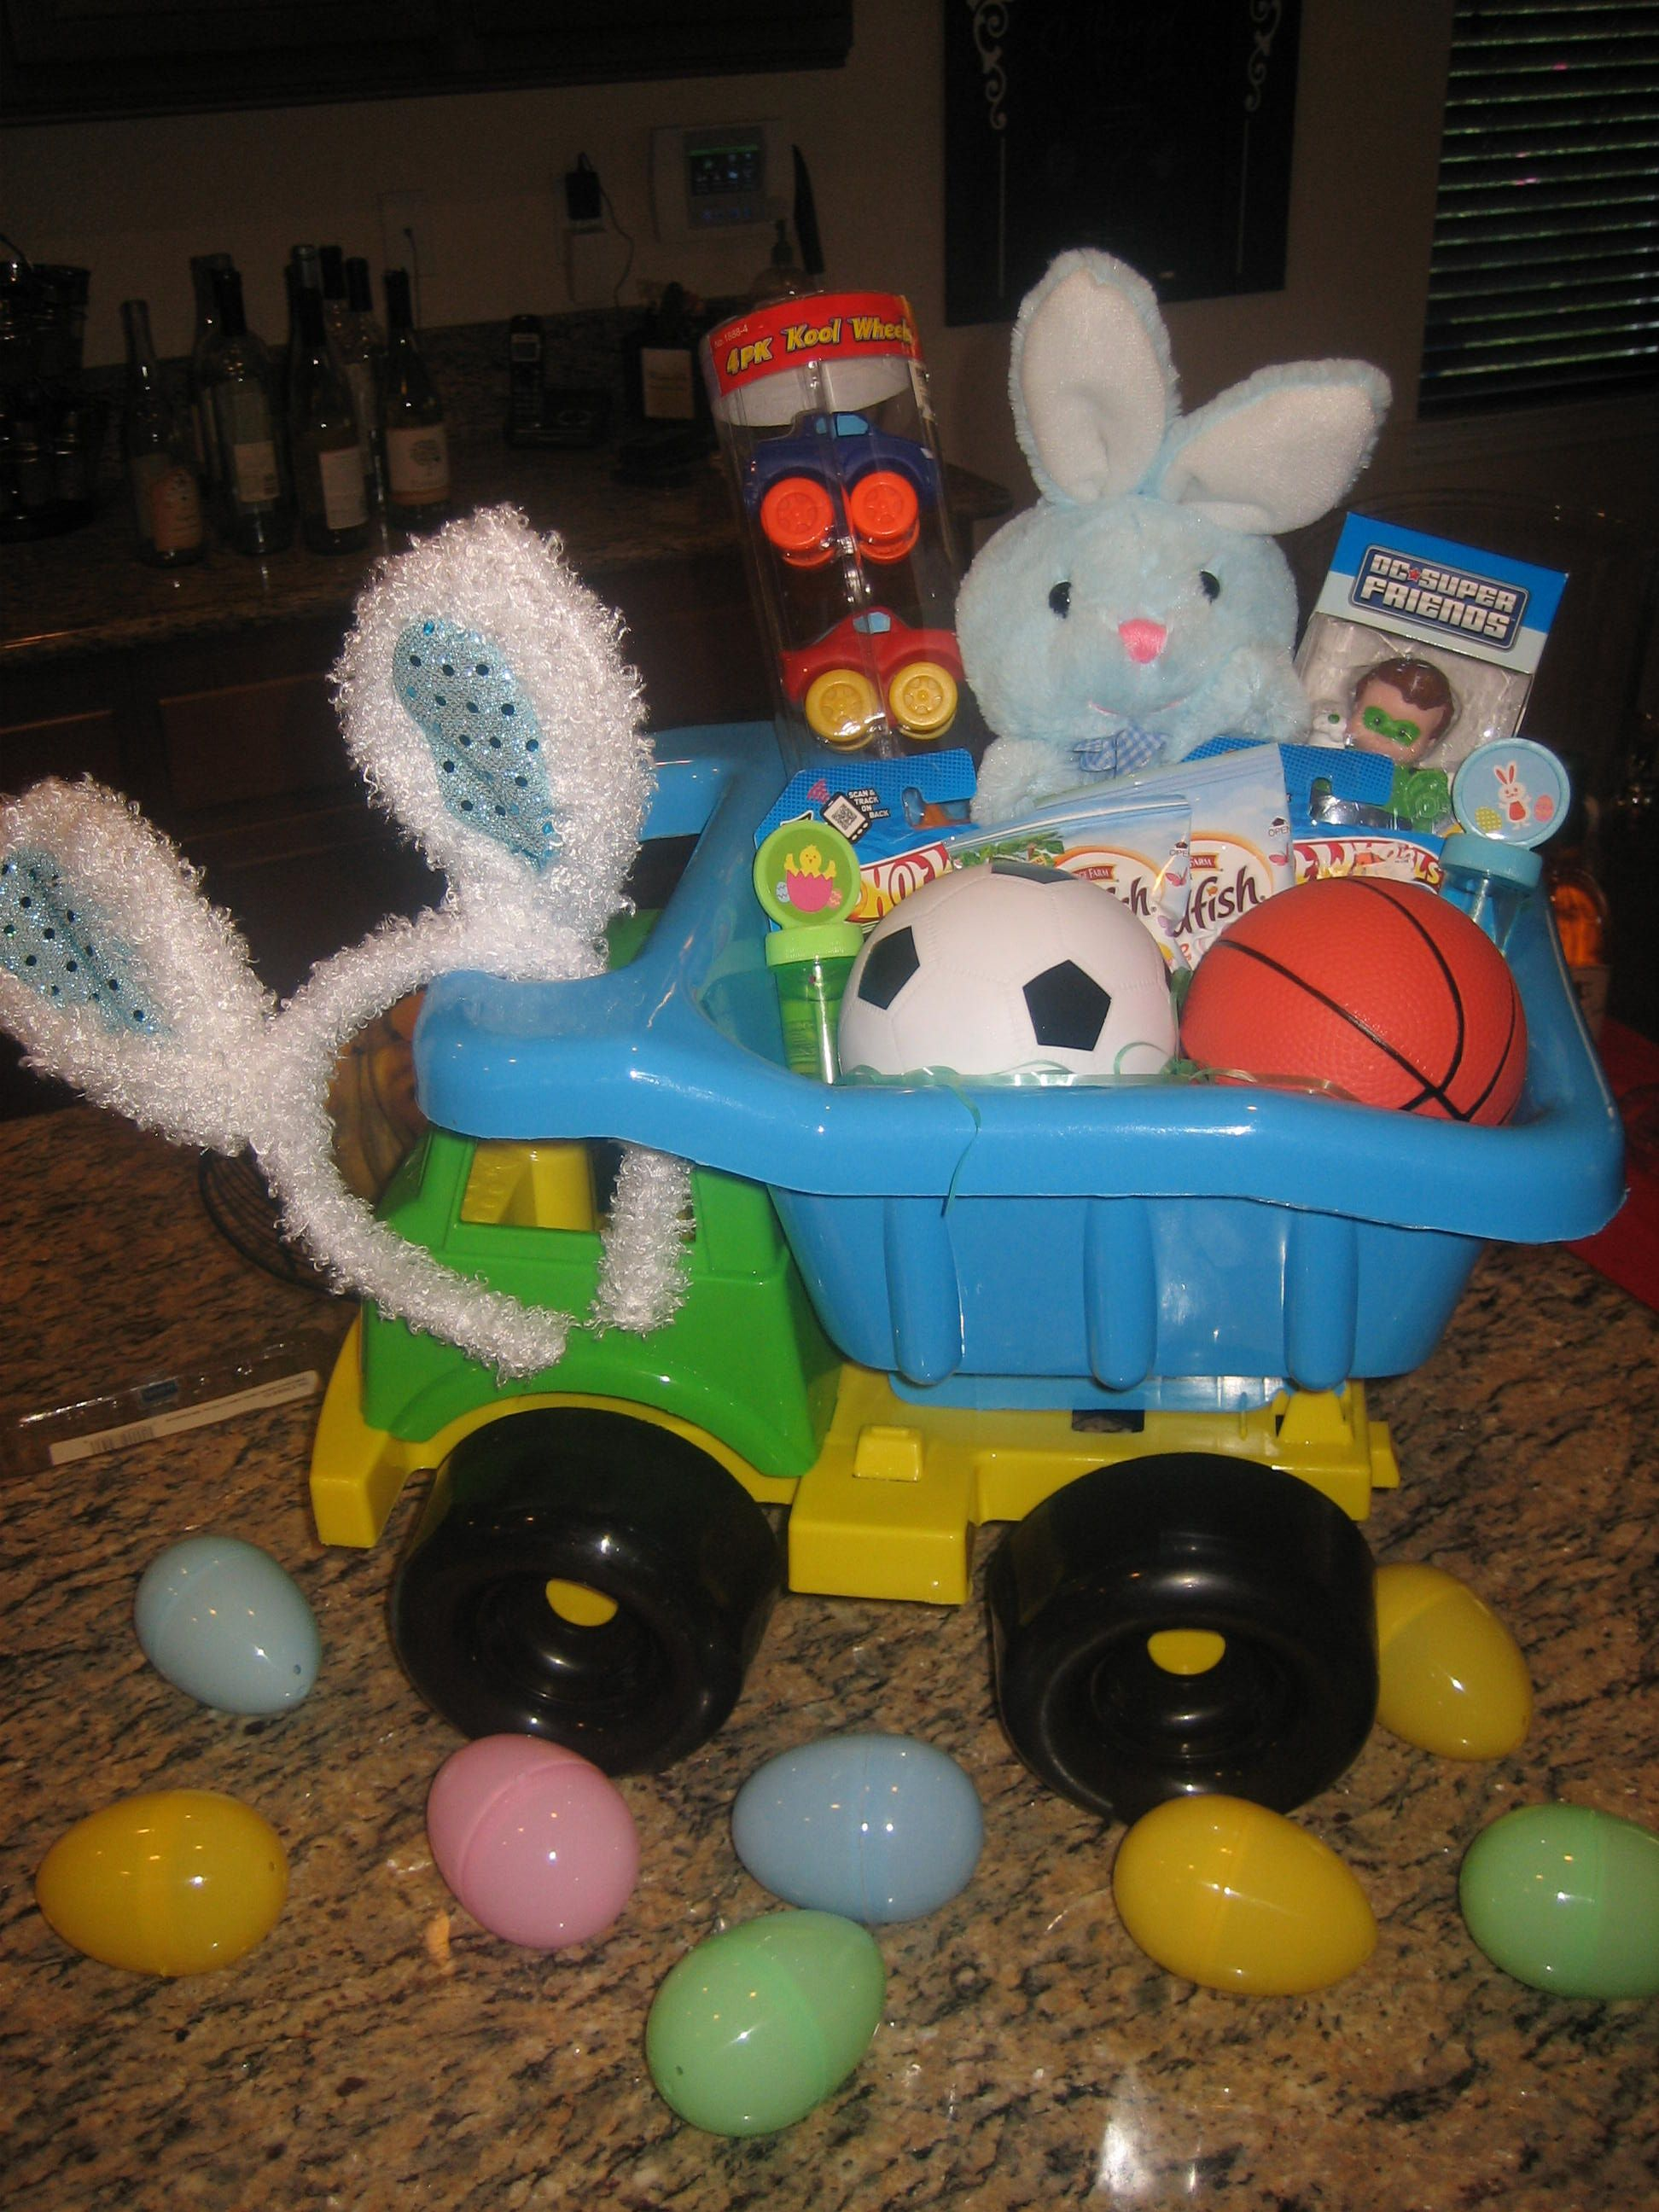 Cute easter basket for baby boy fill eggs with animal crackers cute easter basket for baby boy fill eggs with animal crackers packs of raisins negle Image collections